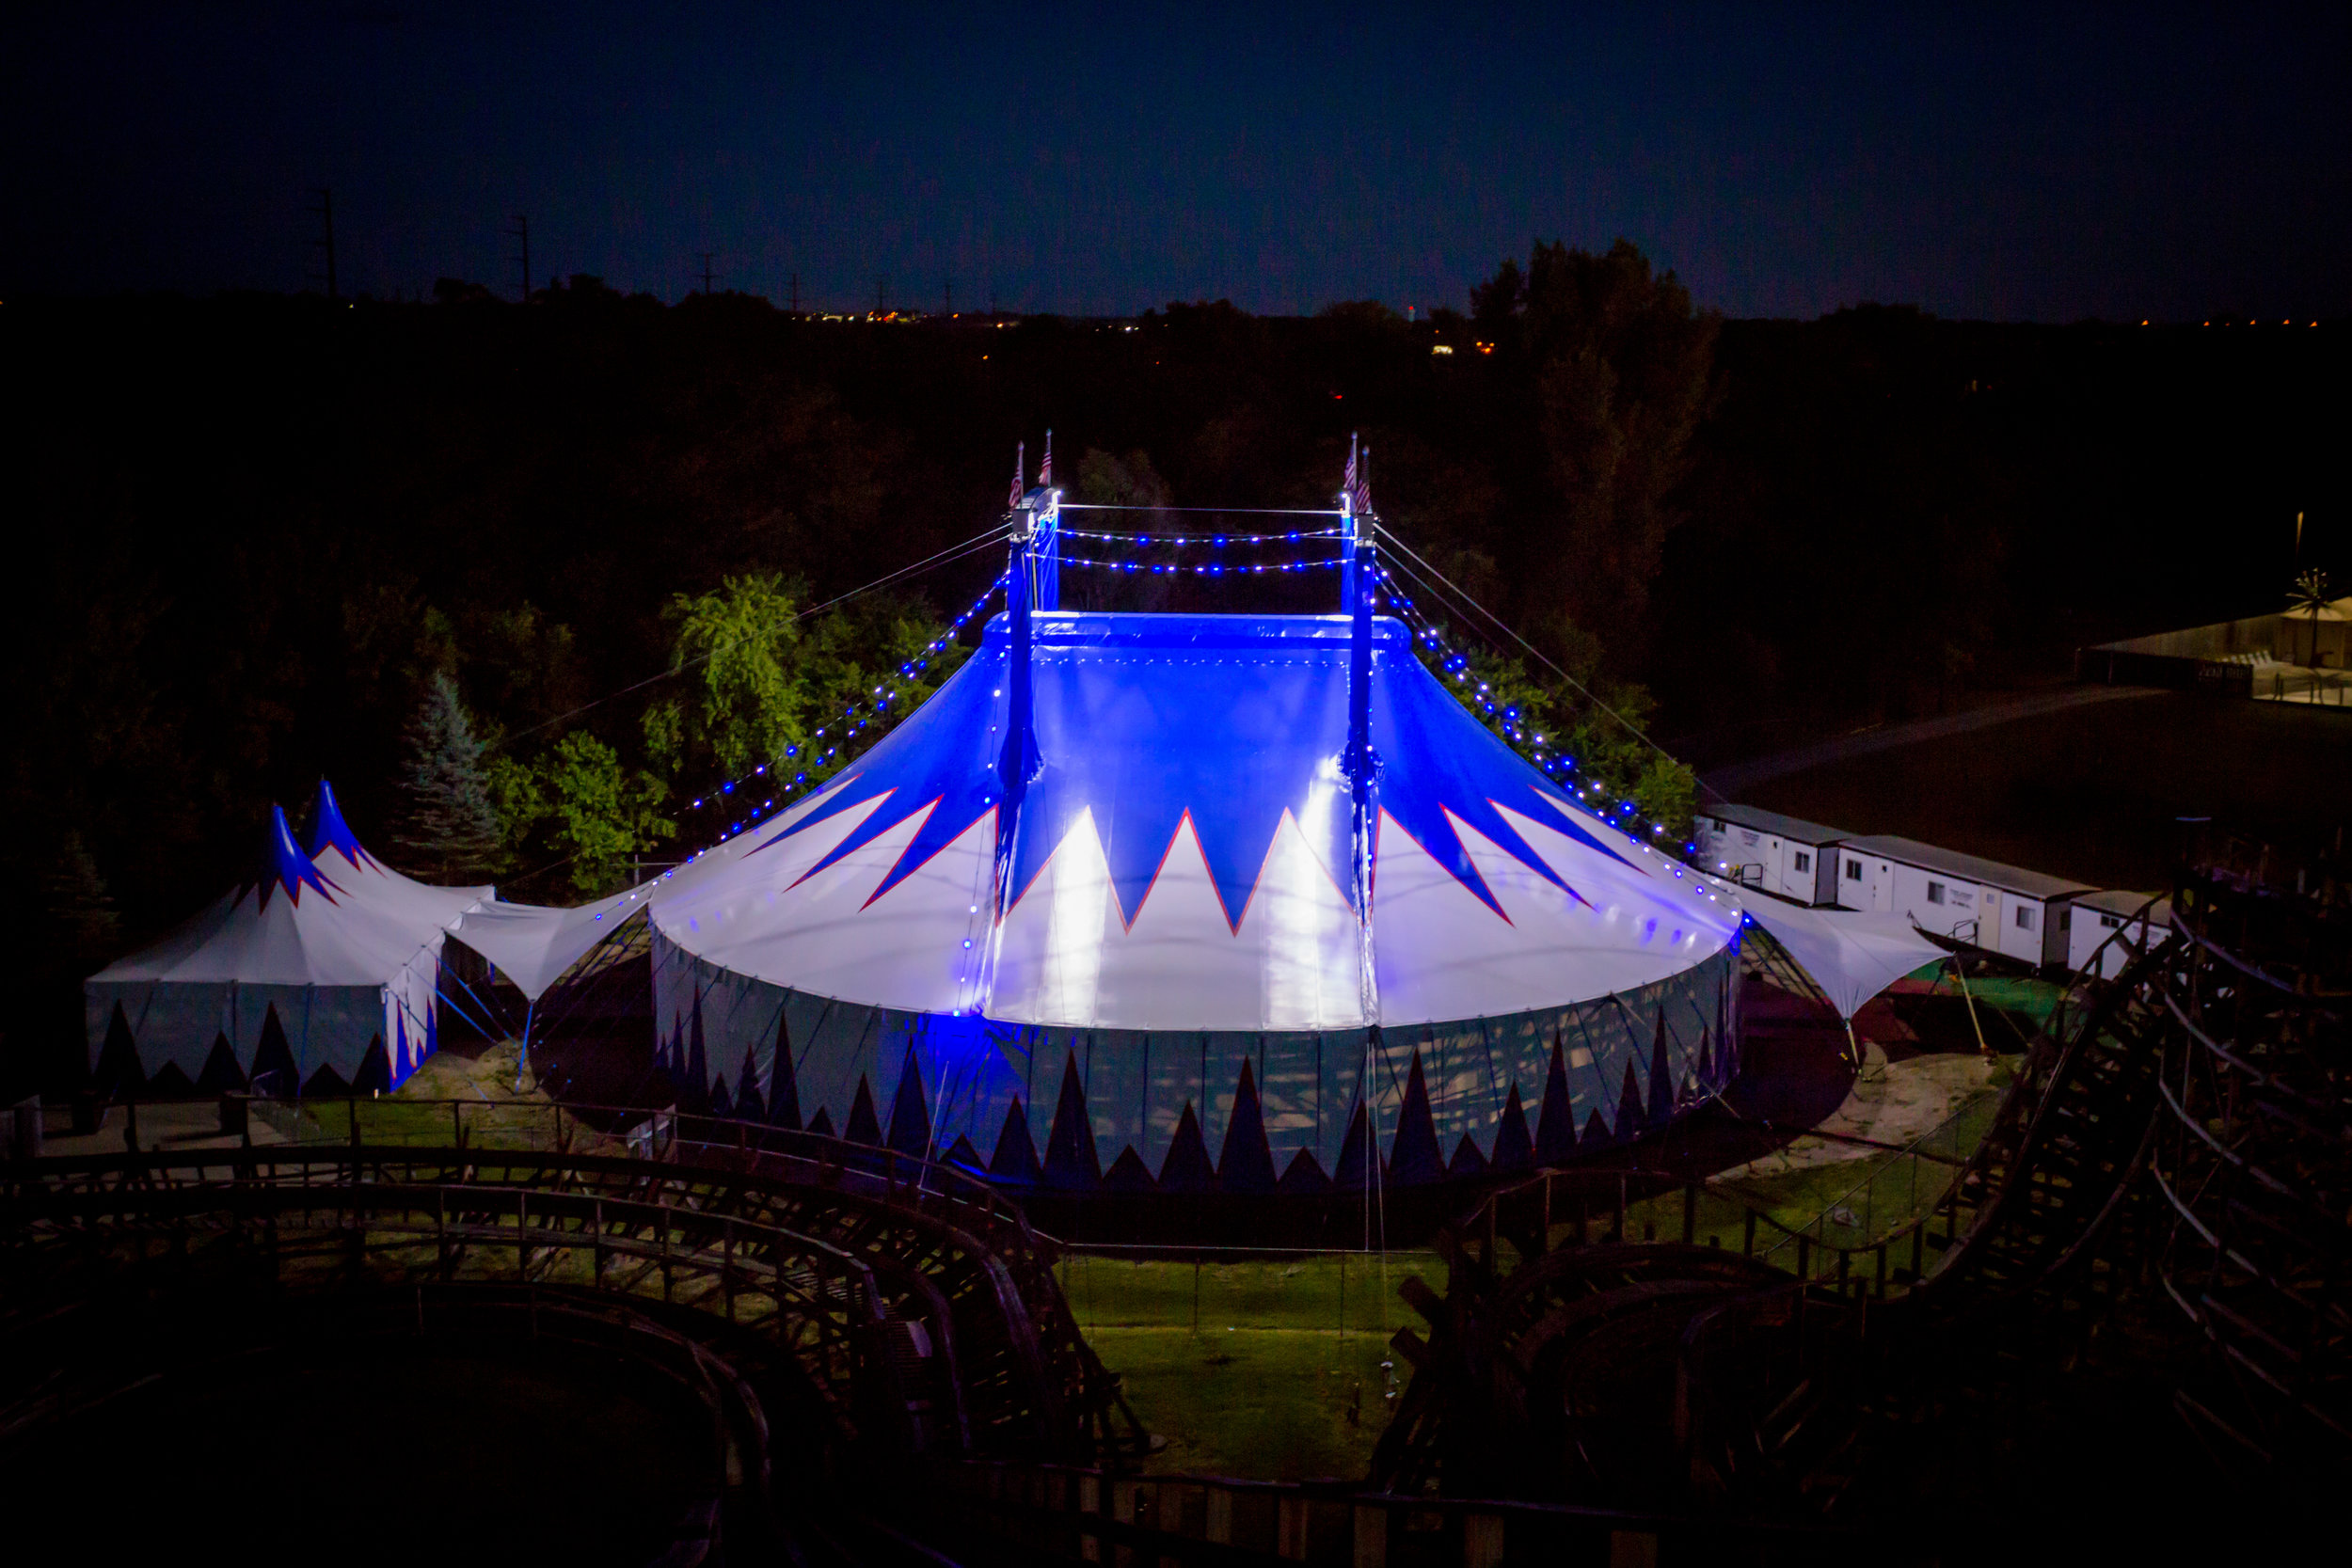 Circus Tent Frontal View